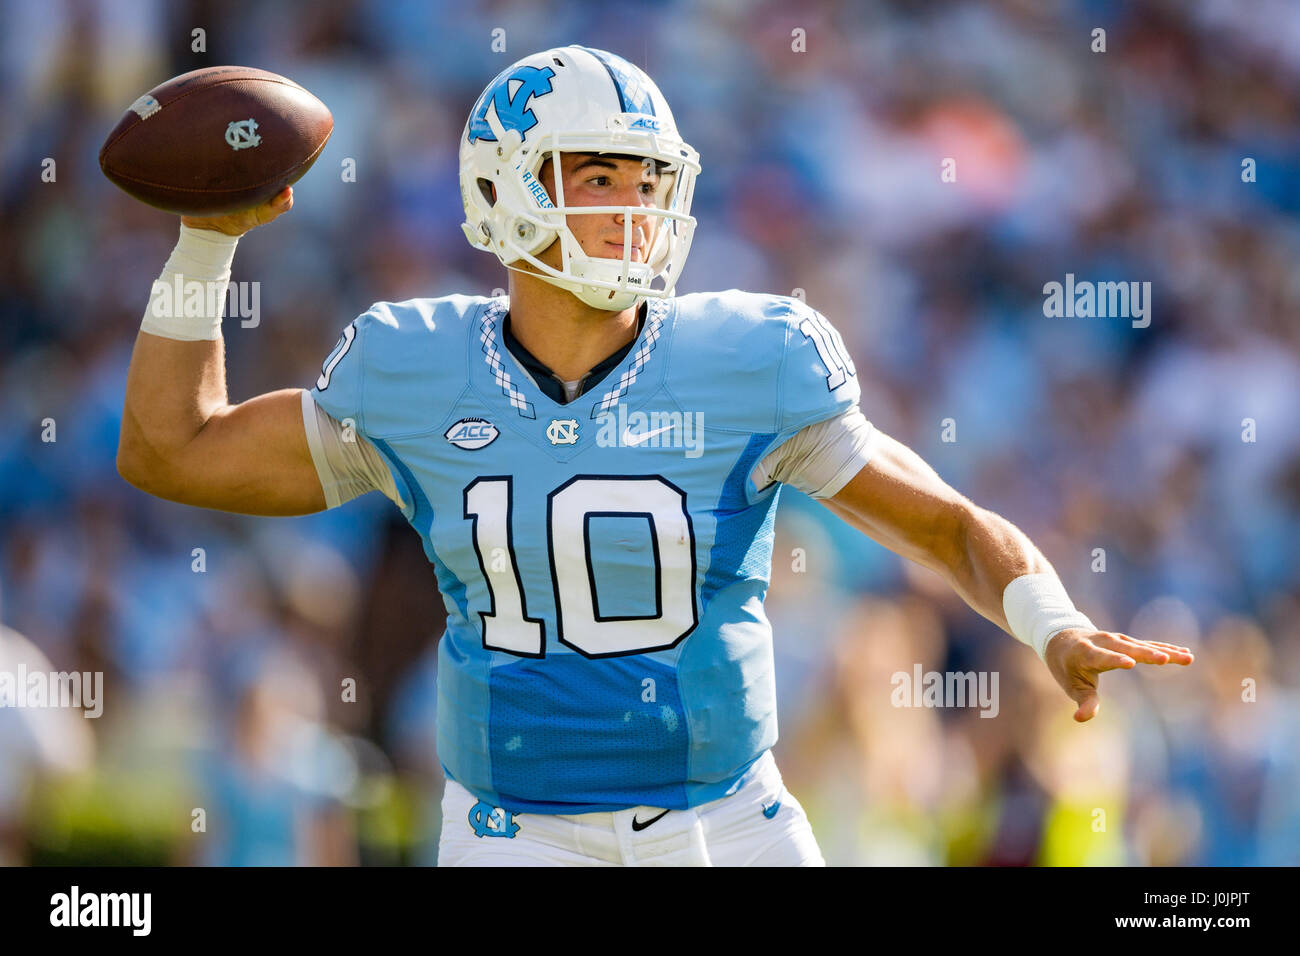 aabb9148313 North Carolina quarterback Mitch Trubisky (10) during the NCAA college  football game between the